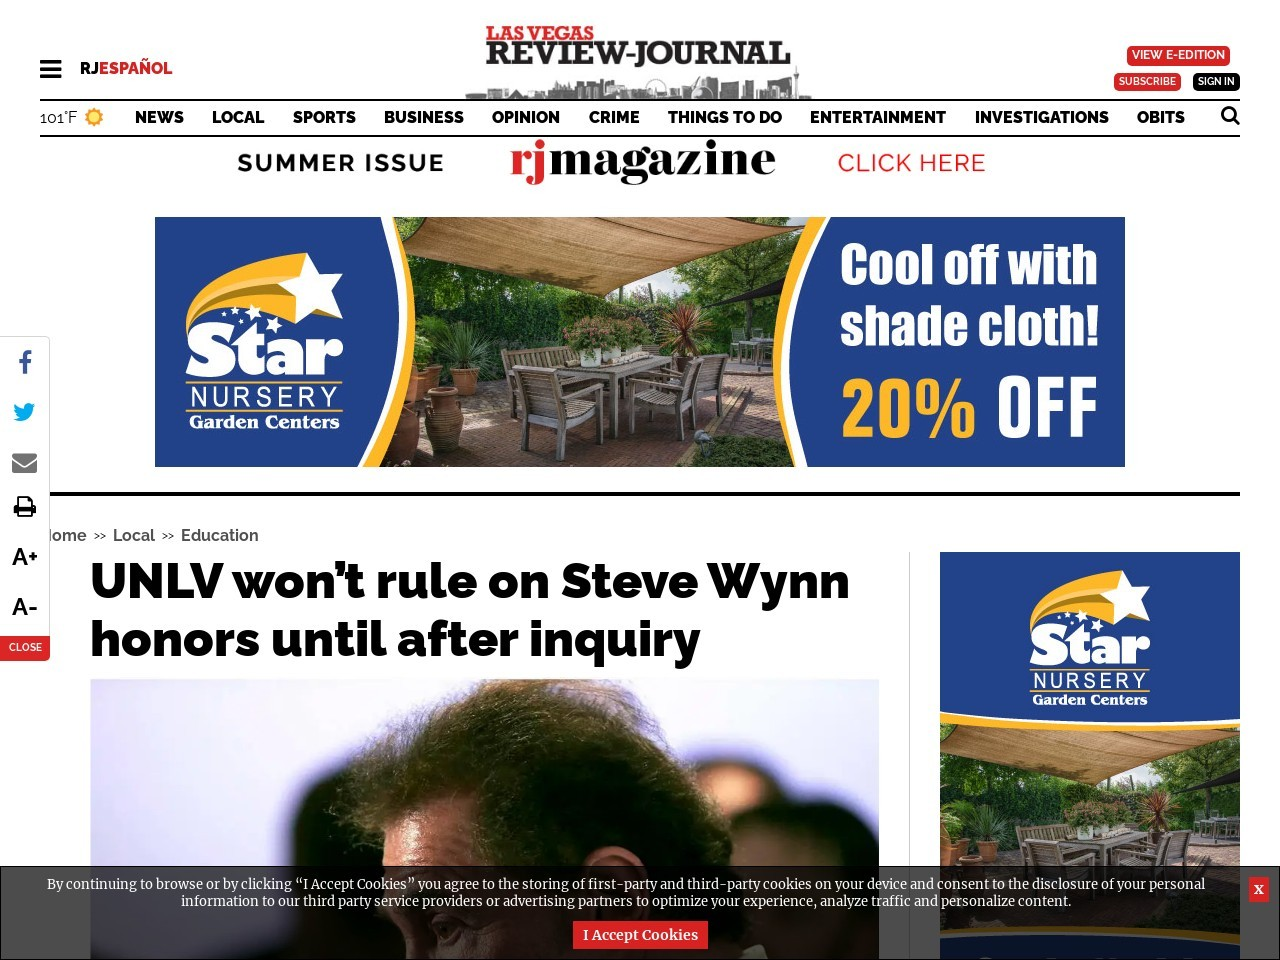 UNLV won't rule on Steve Wynn honors until after inquiry